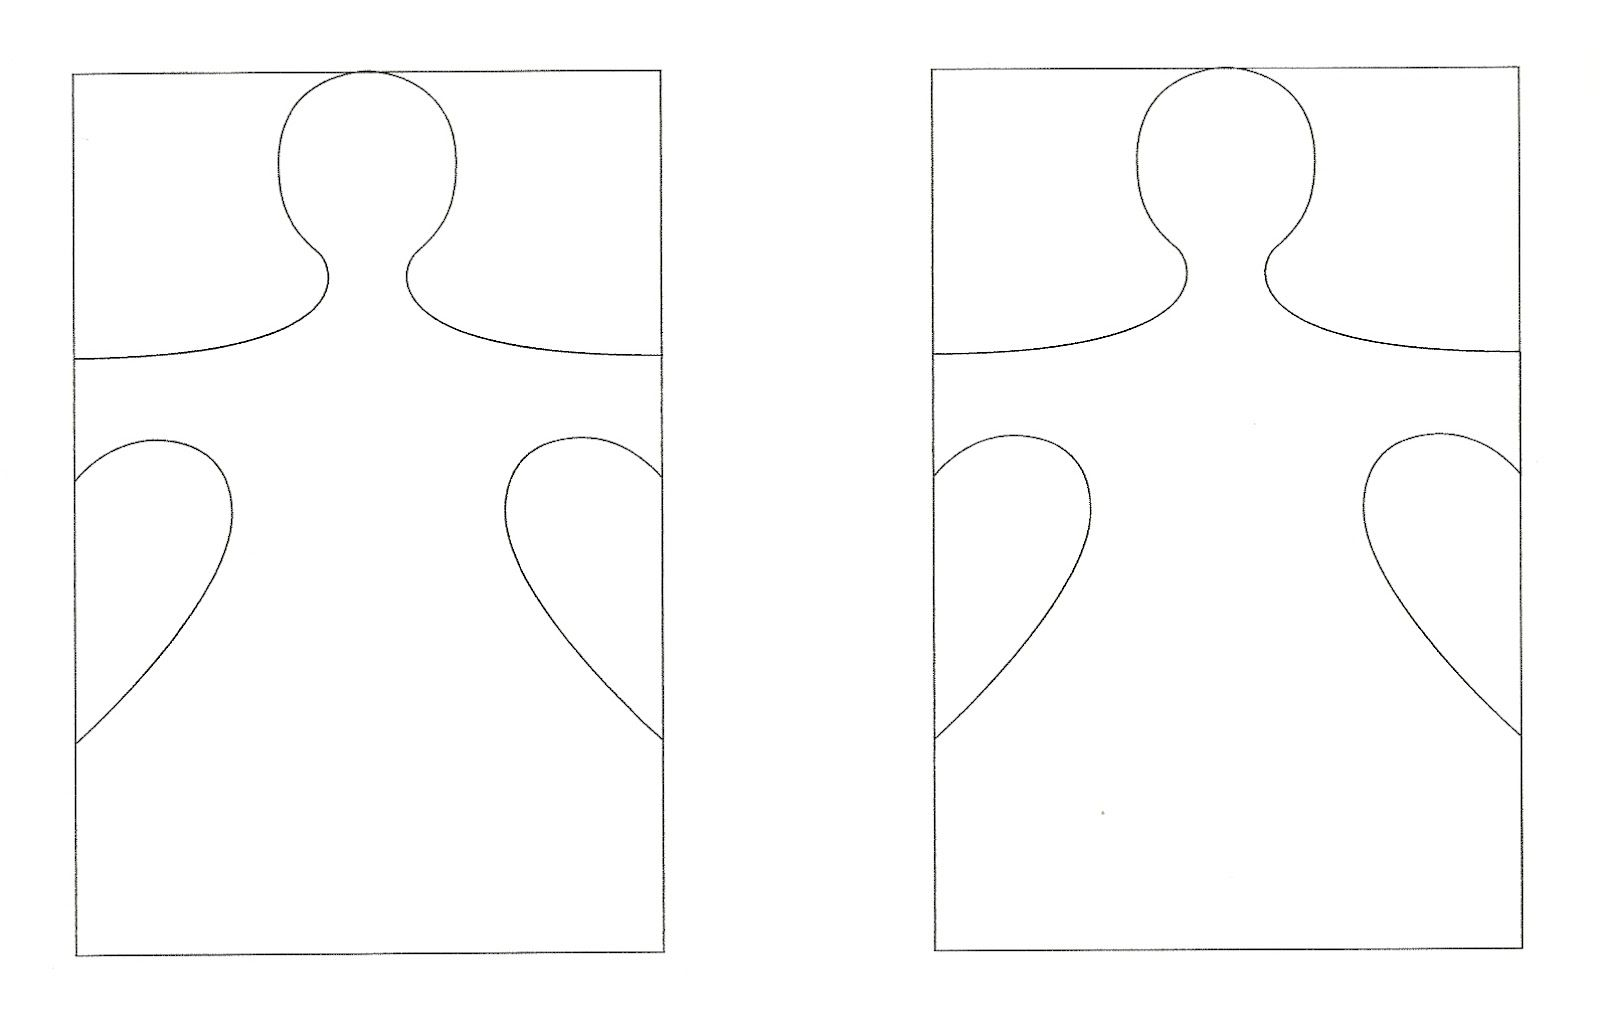 Paper Doll Chain Template 1 Represents Child The Others Are Safe